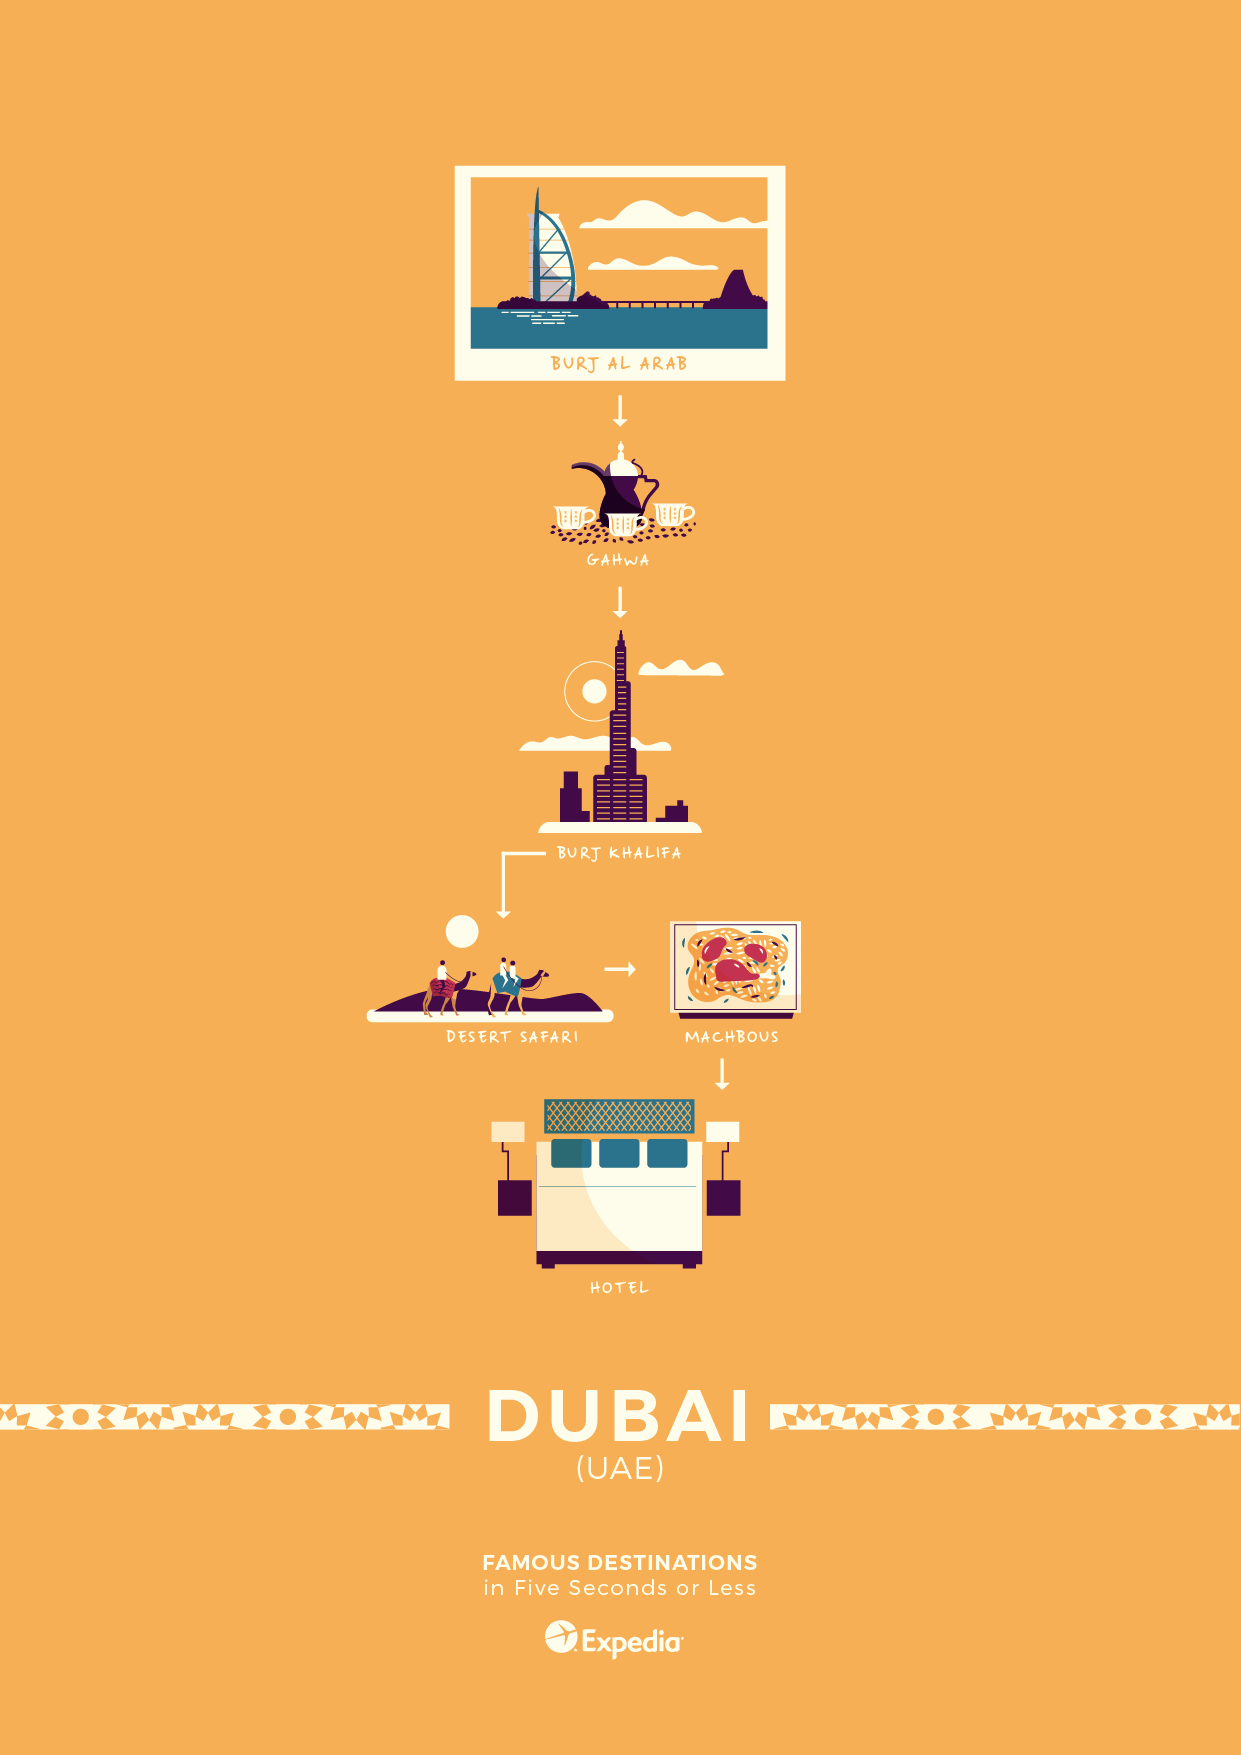 Dubai travel poster elevator pitch